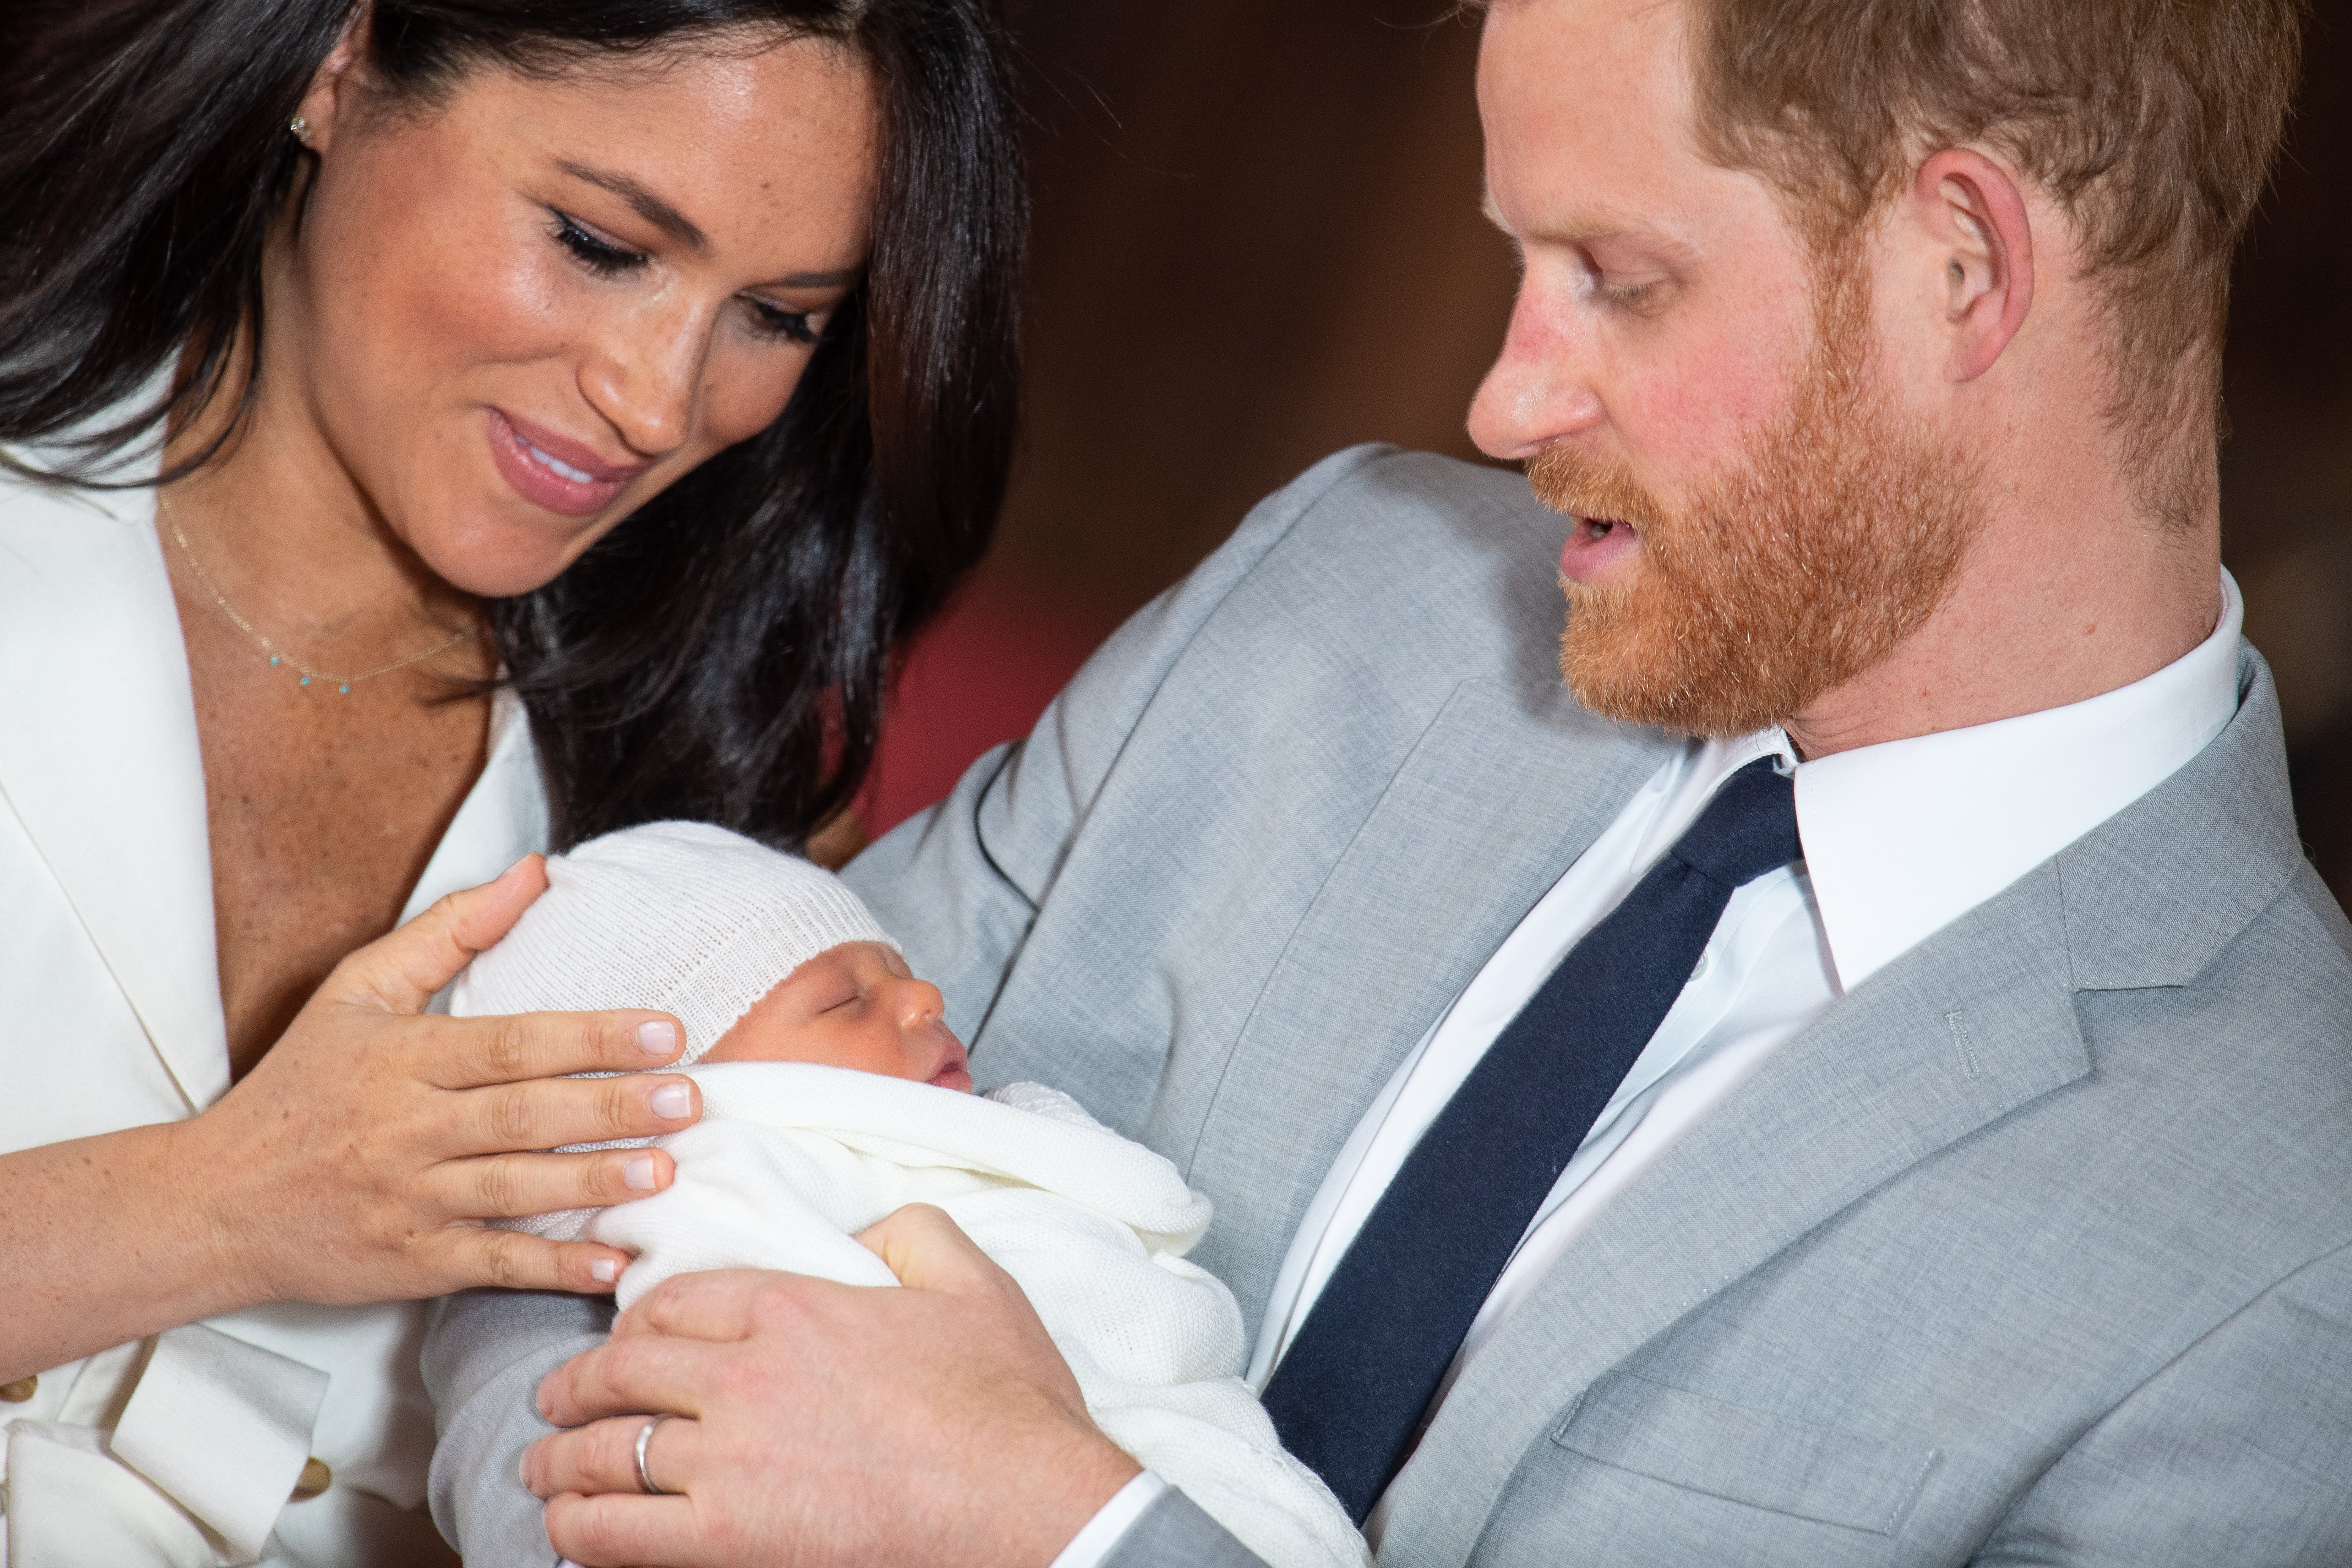 Prince Harry and Meghan Markle introduce Archie Harrison to the world in May 2019 | Photo: Getty Images